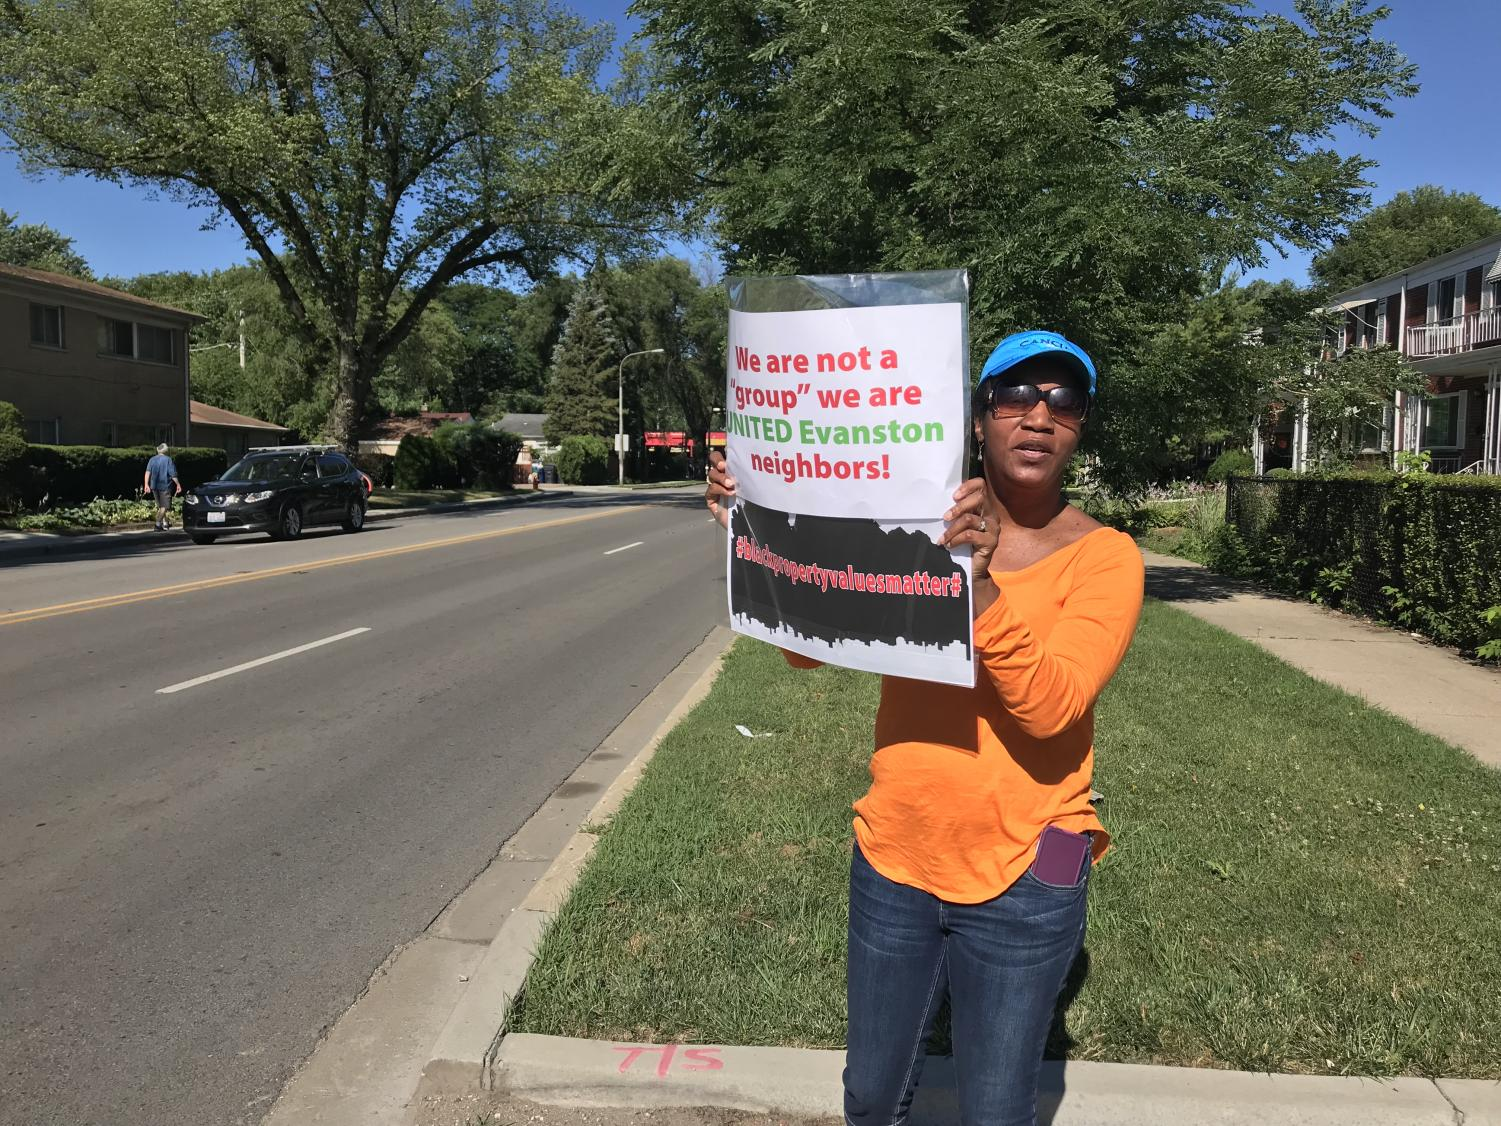 Evanston resident Carolyn Murray stands with a sign protesting a housing project at 2215 Dempster St. Murray was among other Evanston residents protesting the new development early Wednesday morning.